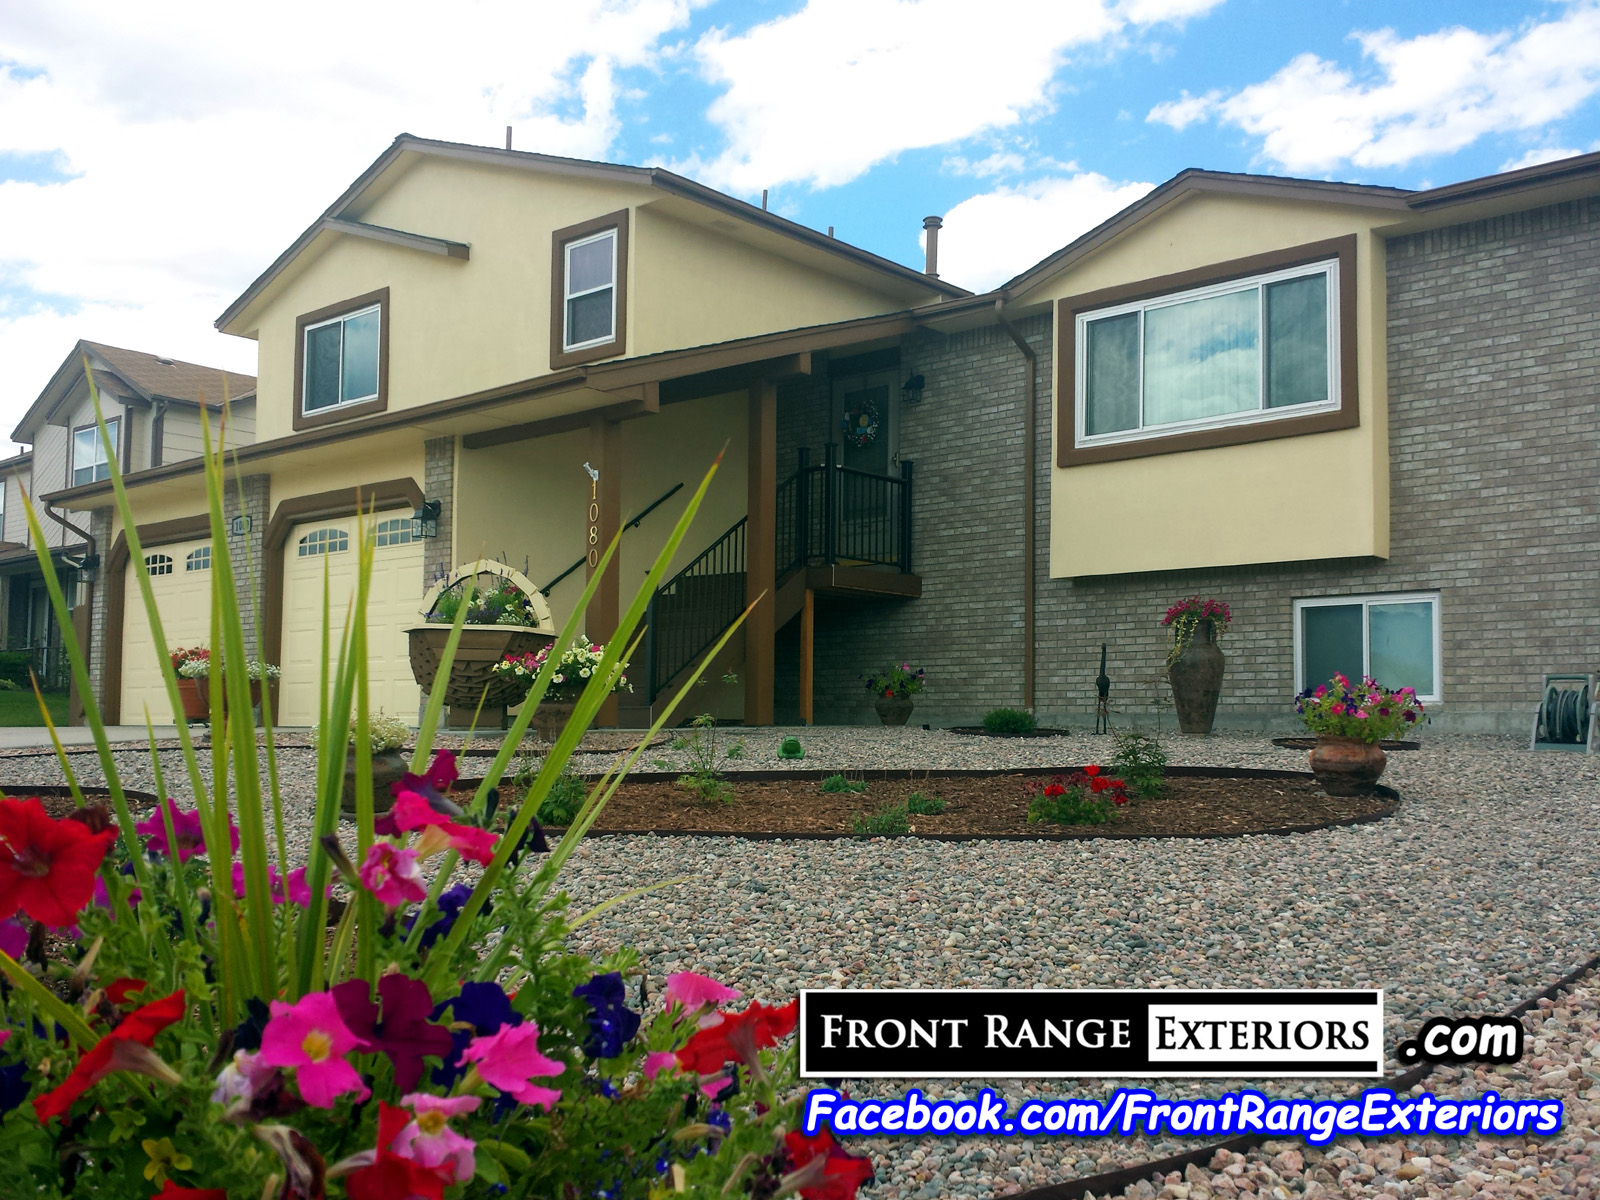 Front range exteriors inc stucco over siding and painting job in colorado springs - Exterior painting colorado springs decoration ...